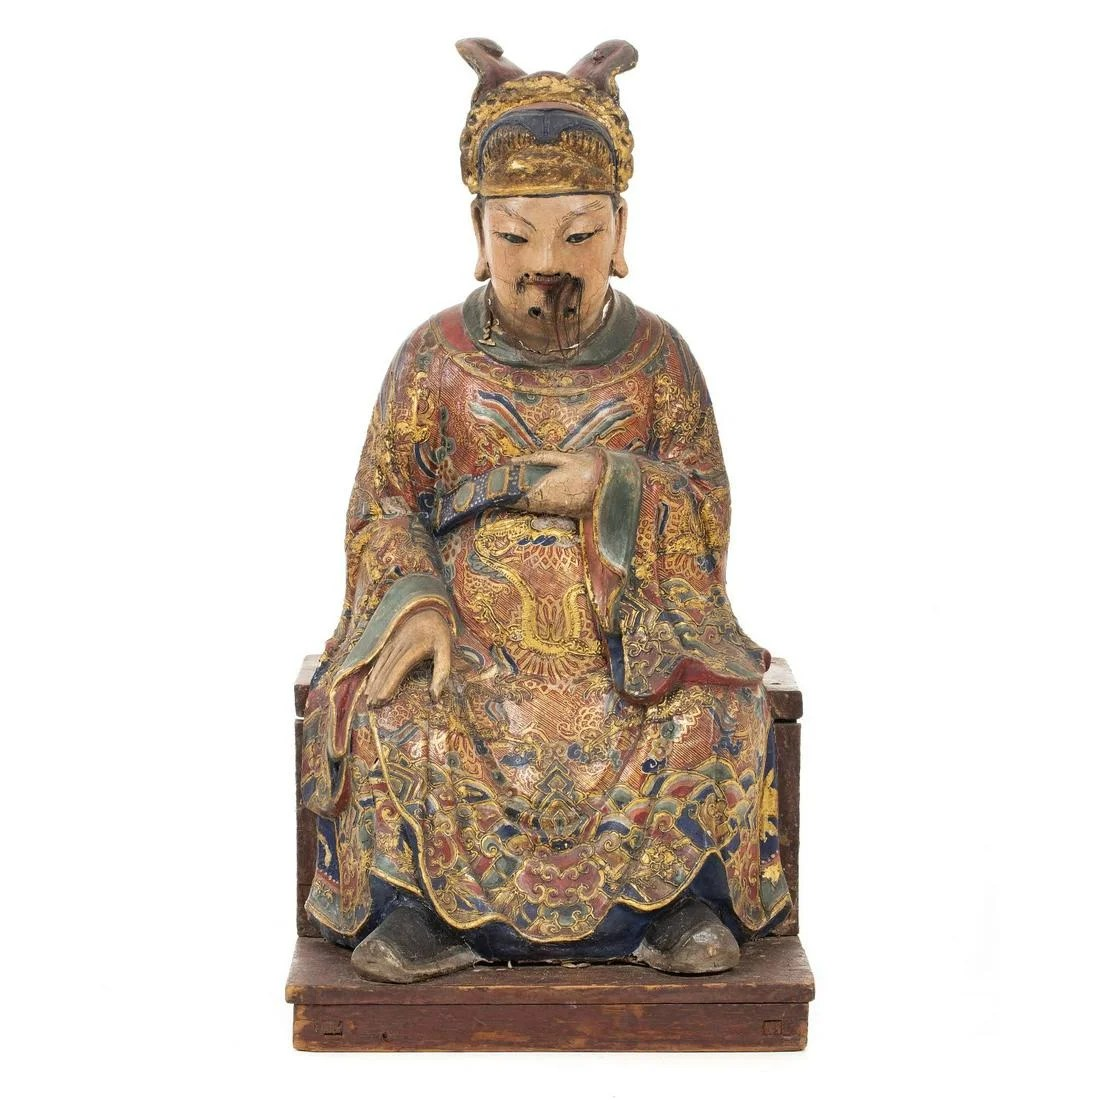 Chinese terracotta dignitary figure, 17th/18th